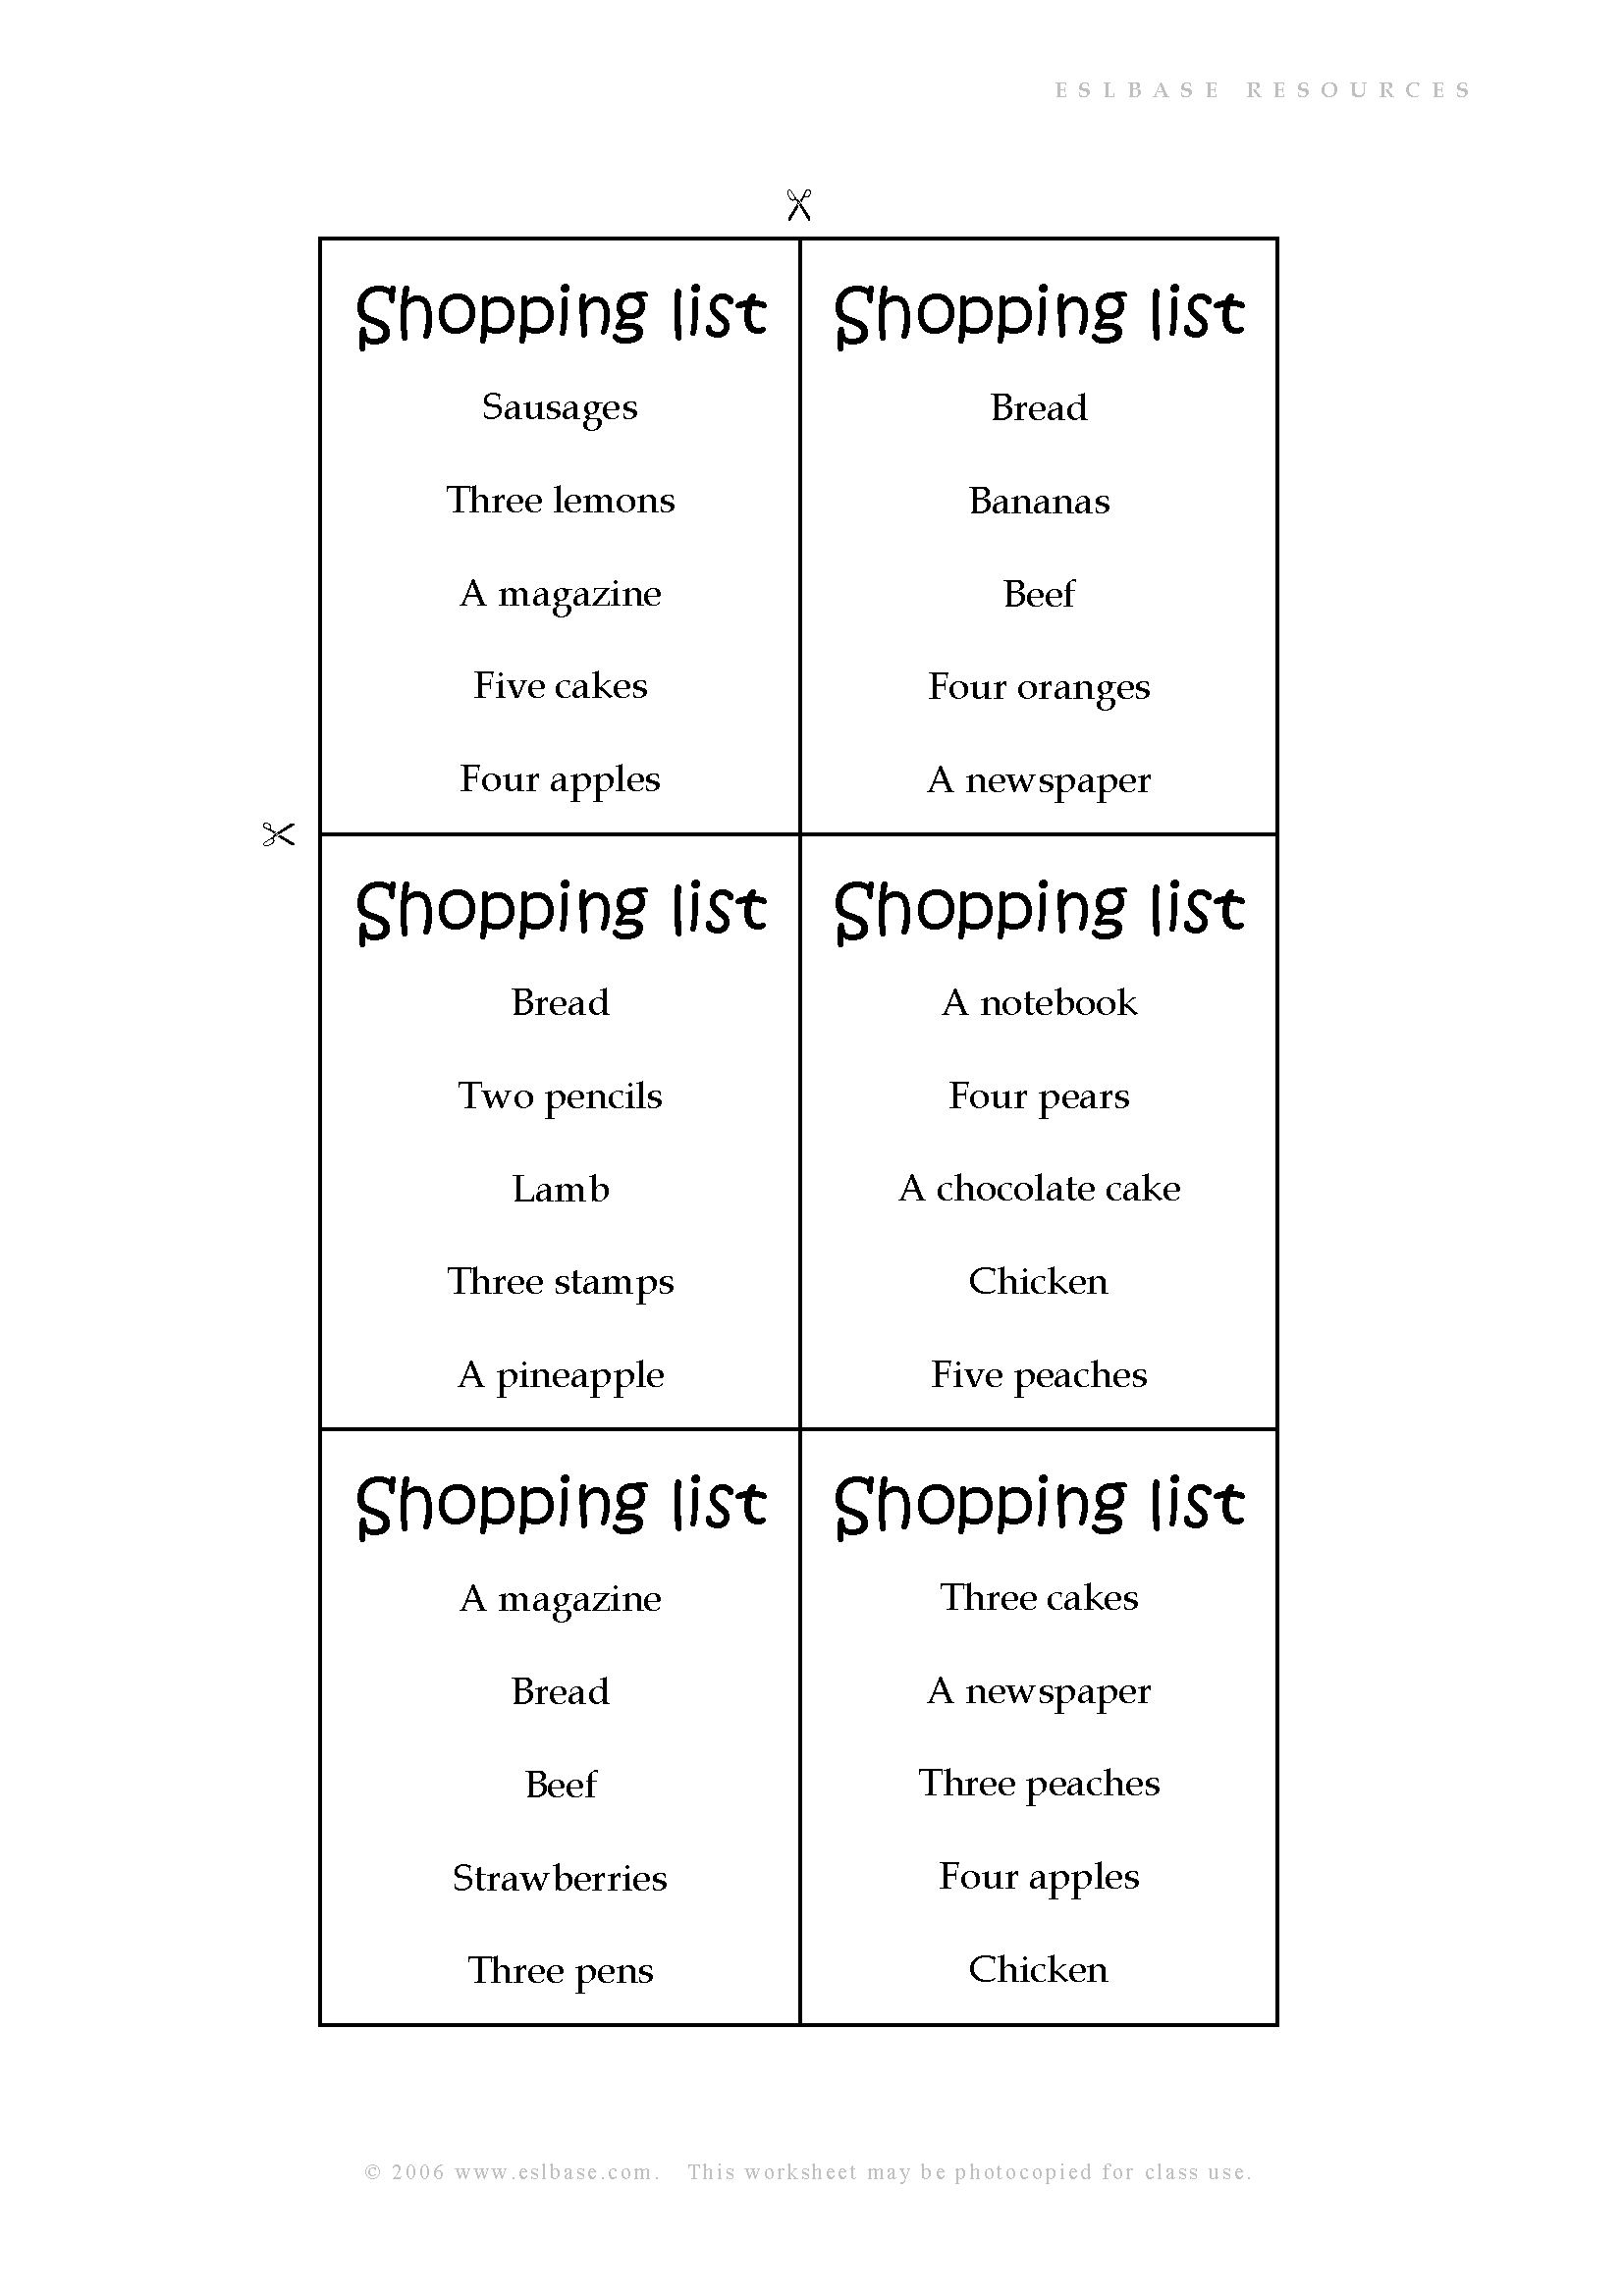 Shopping Roleplay Activity